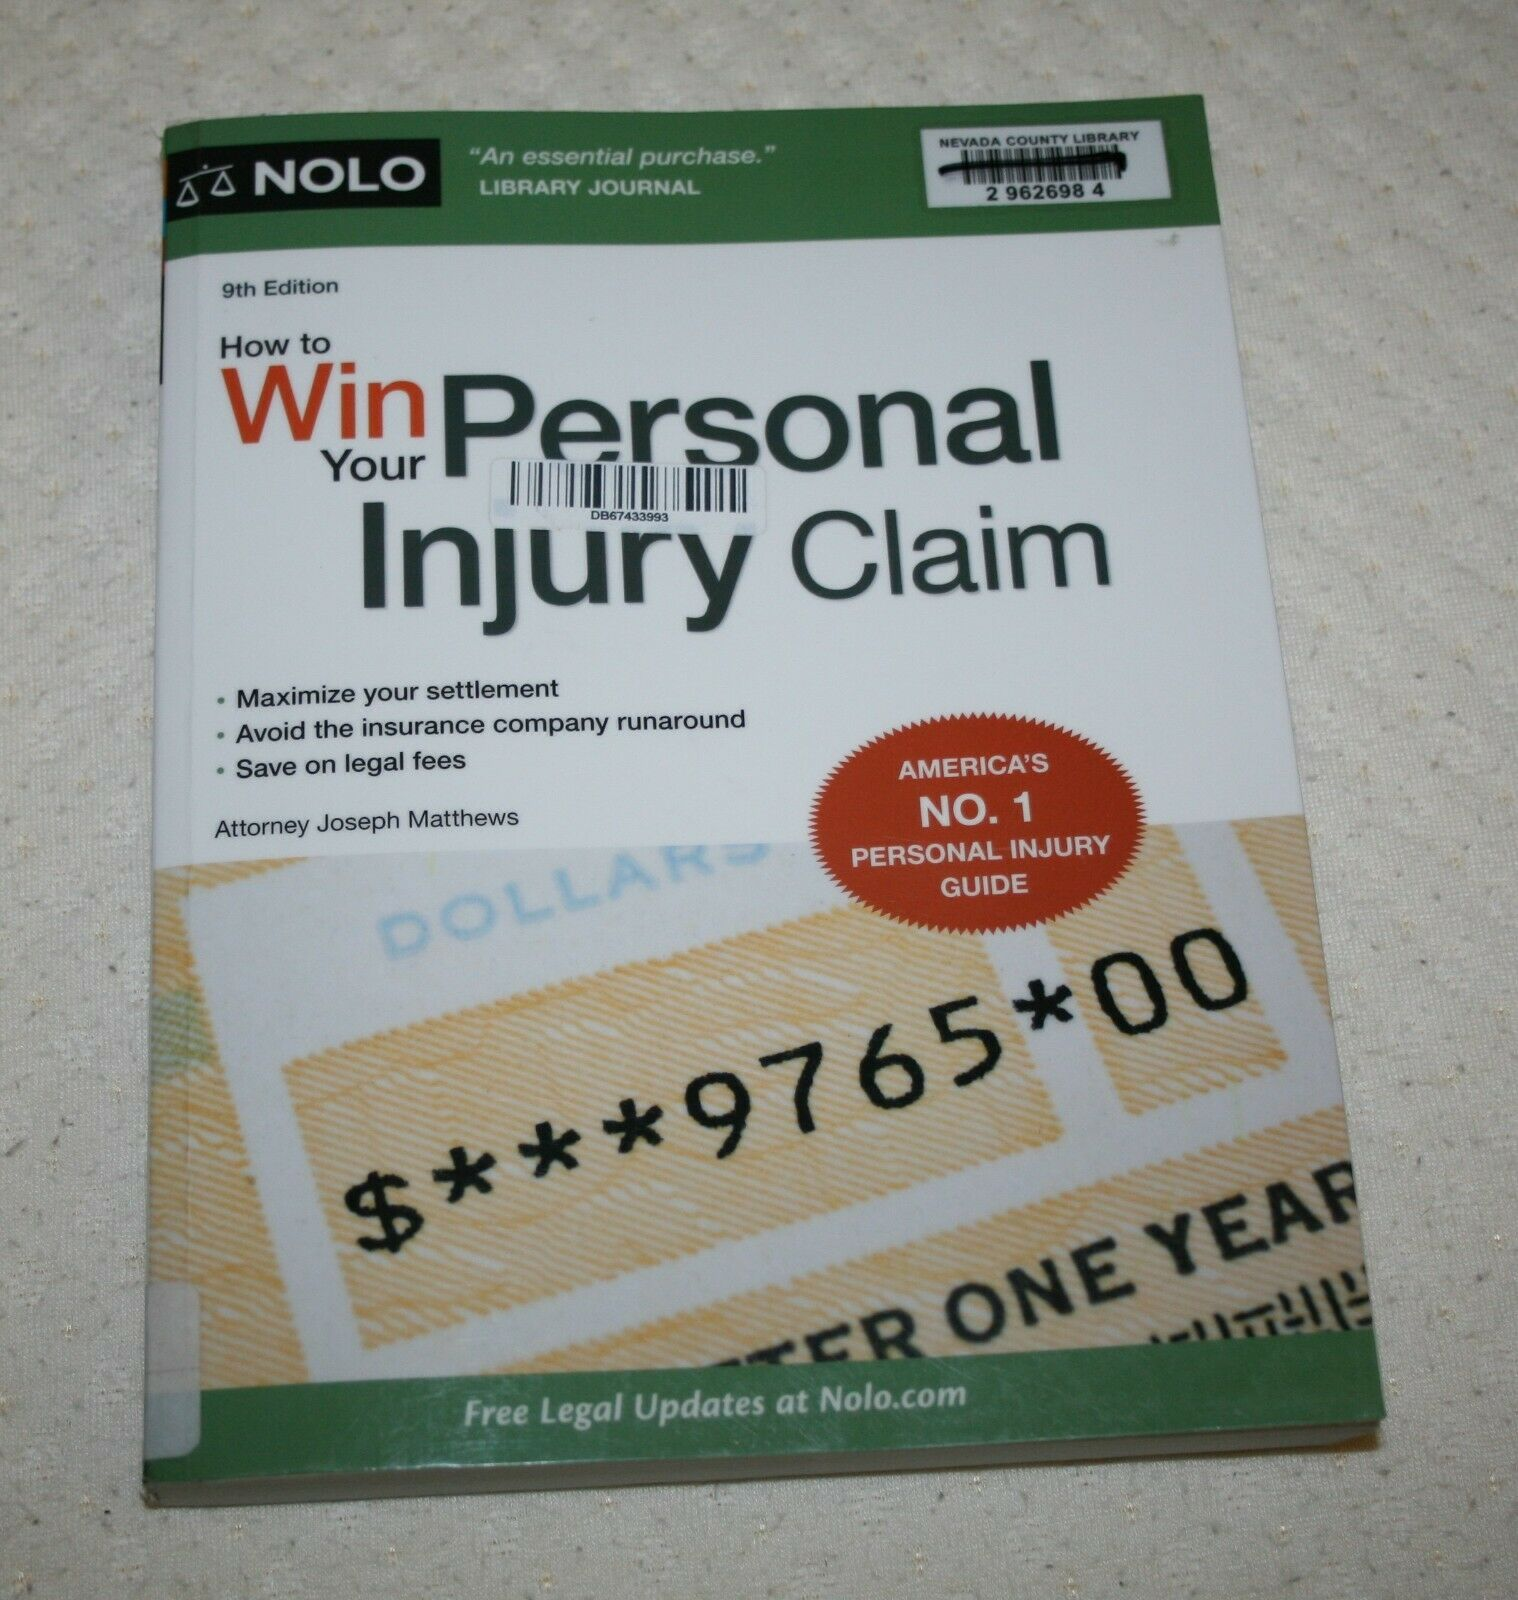 How to Win Your Personal Injury Claim Ninth Edition Paperback Publisher: NOLO 1